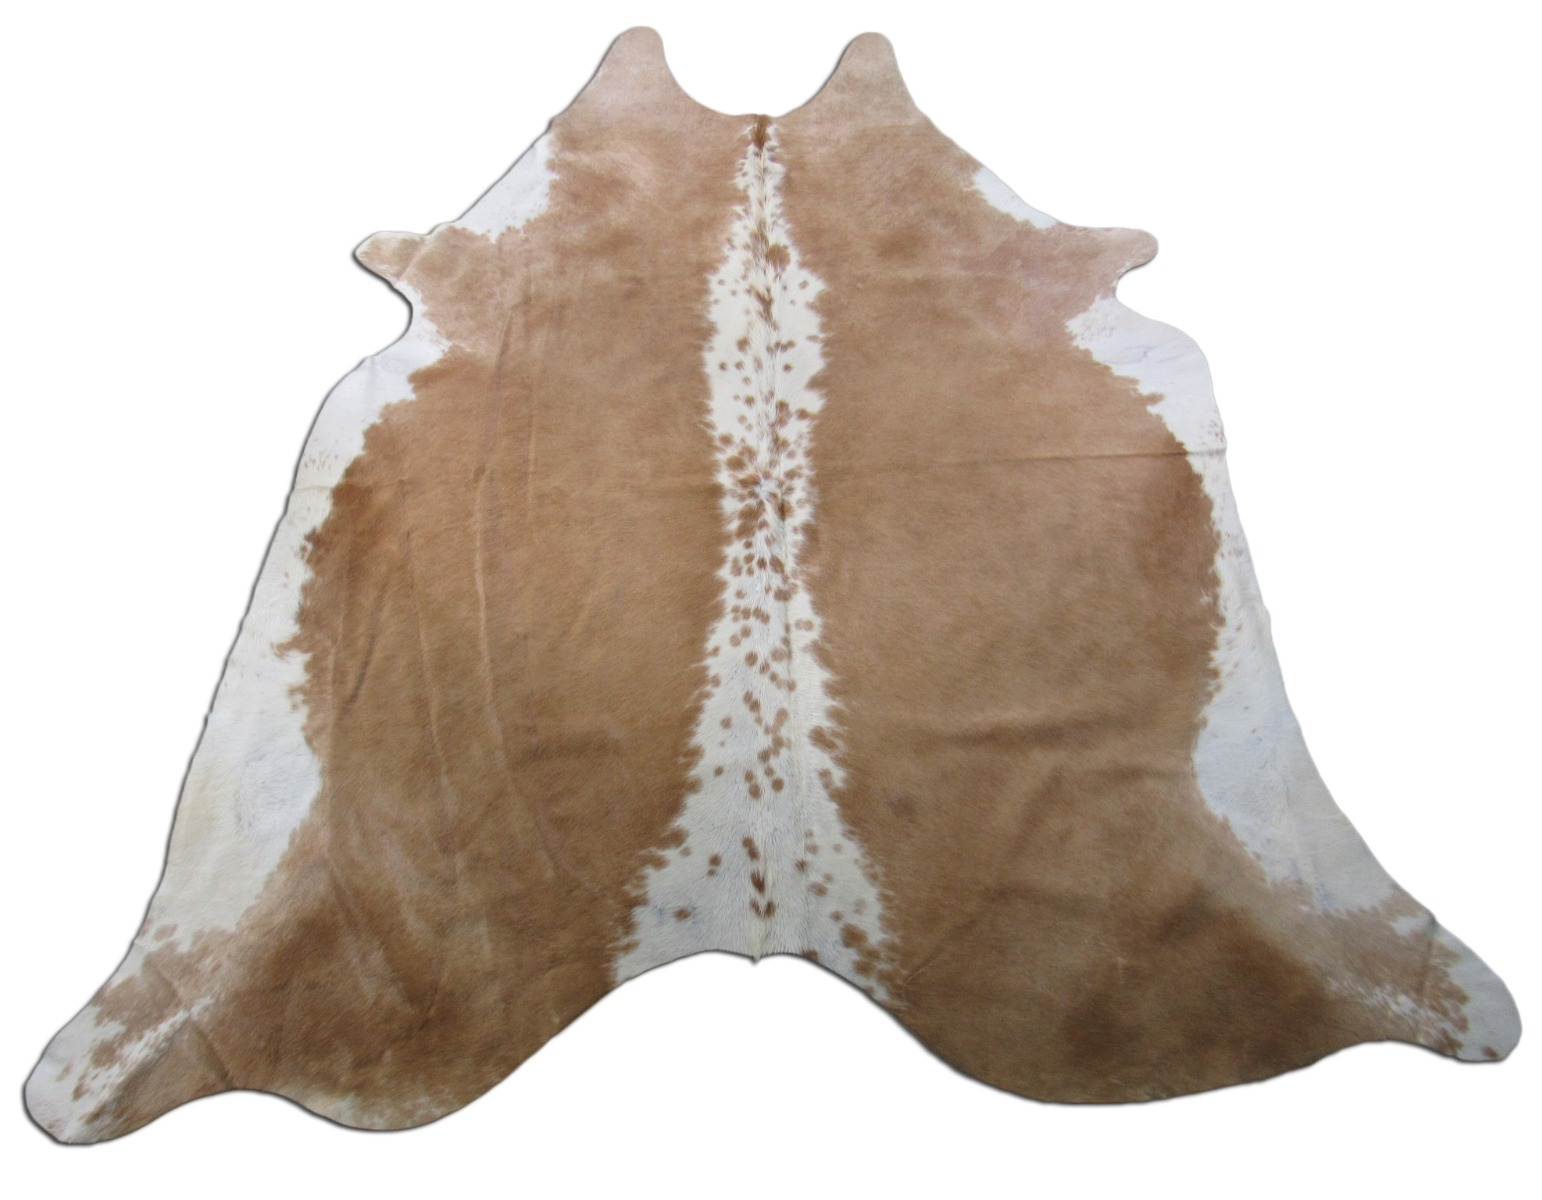 A-1370 Hereford Caramel And White Cowhide Rug Size: 7 3/4' X 7'